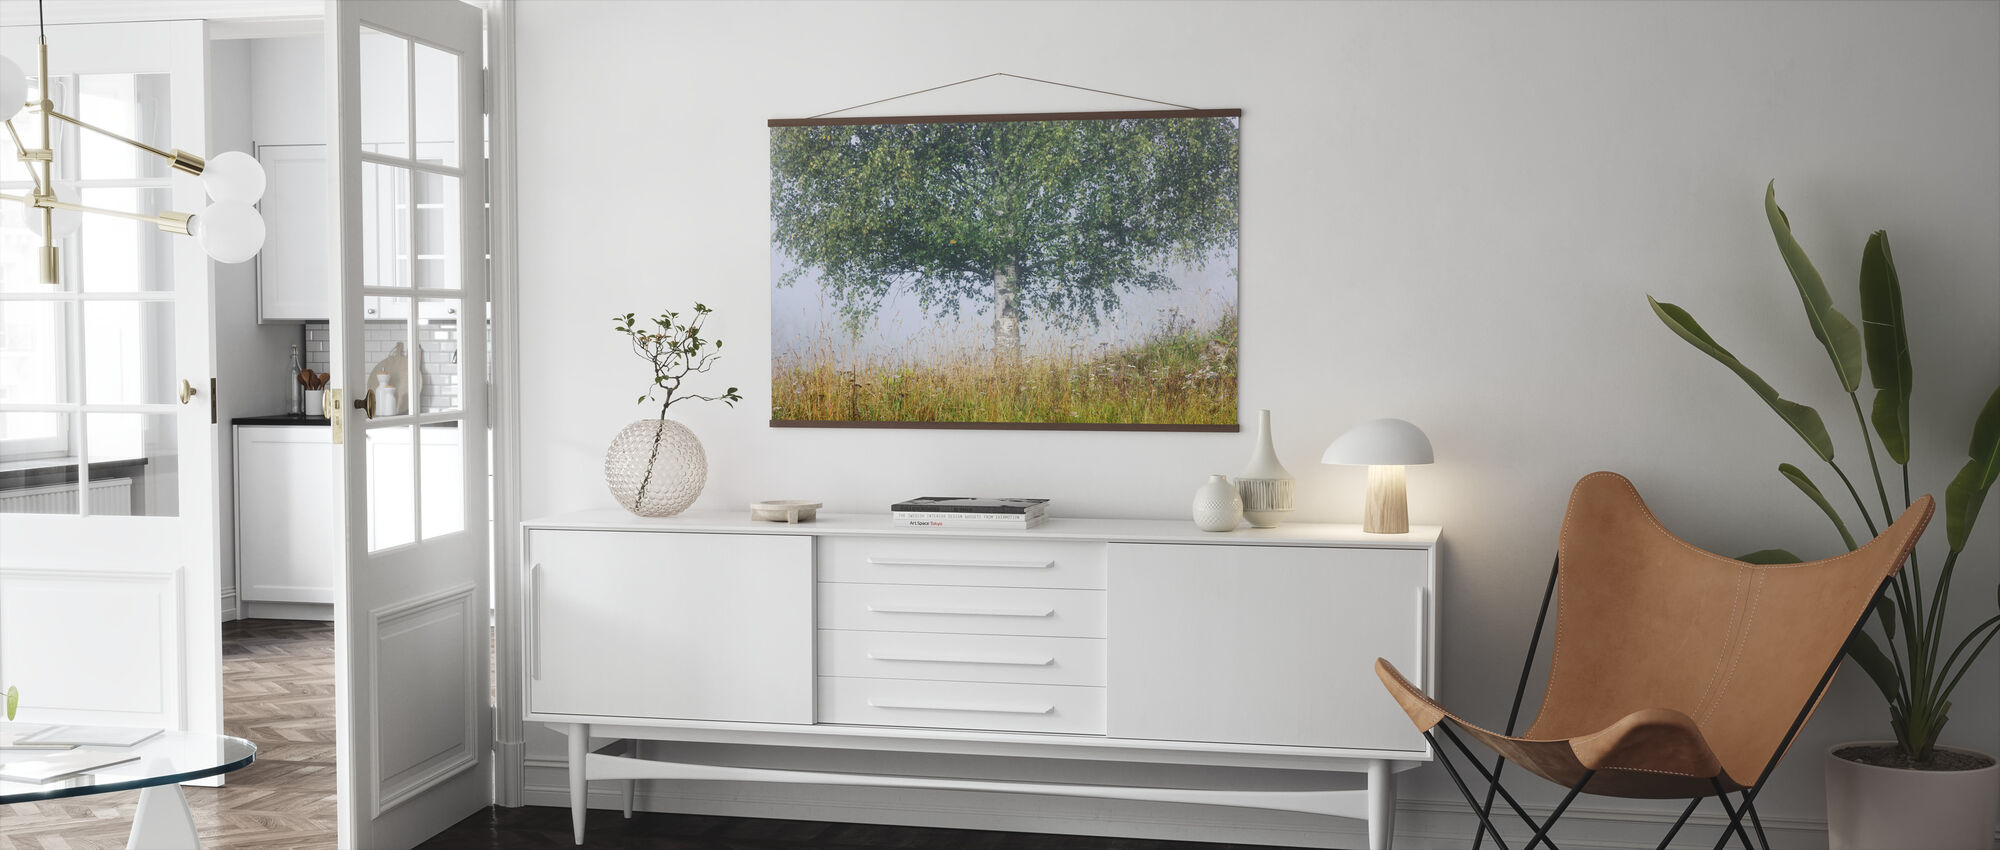 Peaceful Place - Poster - Living Room